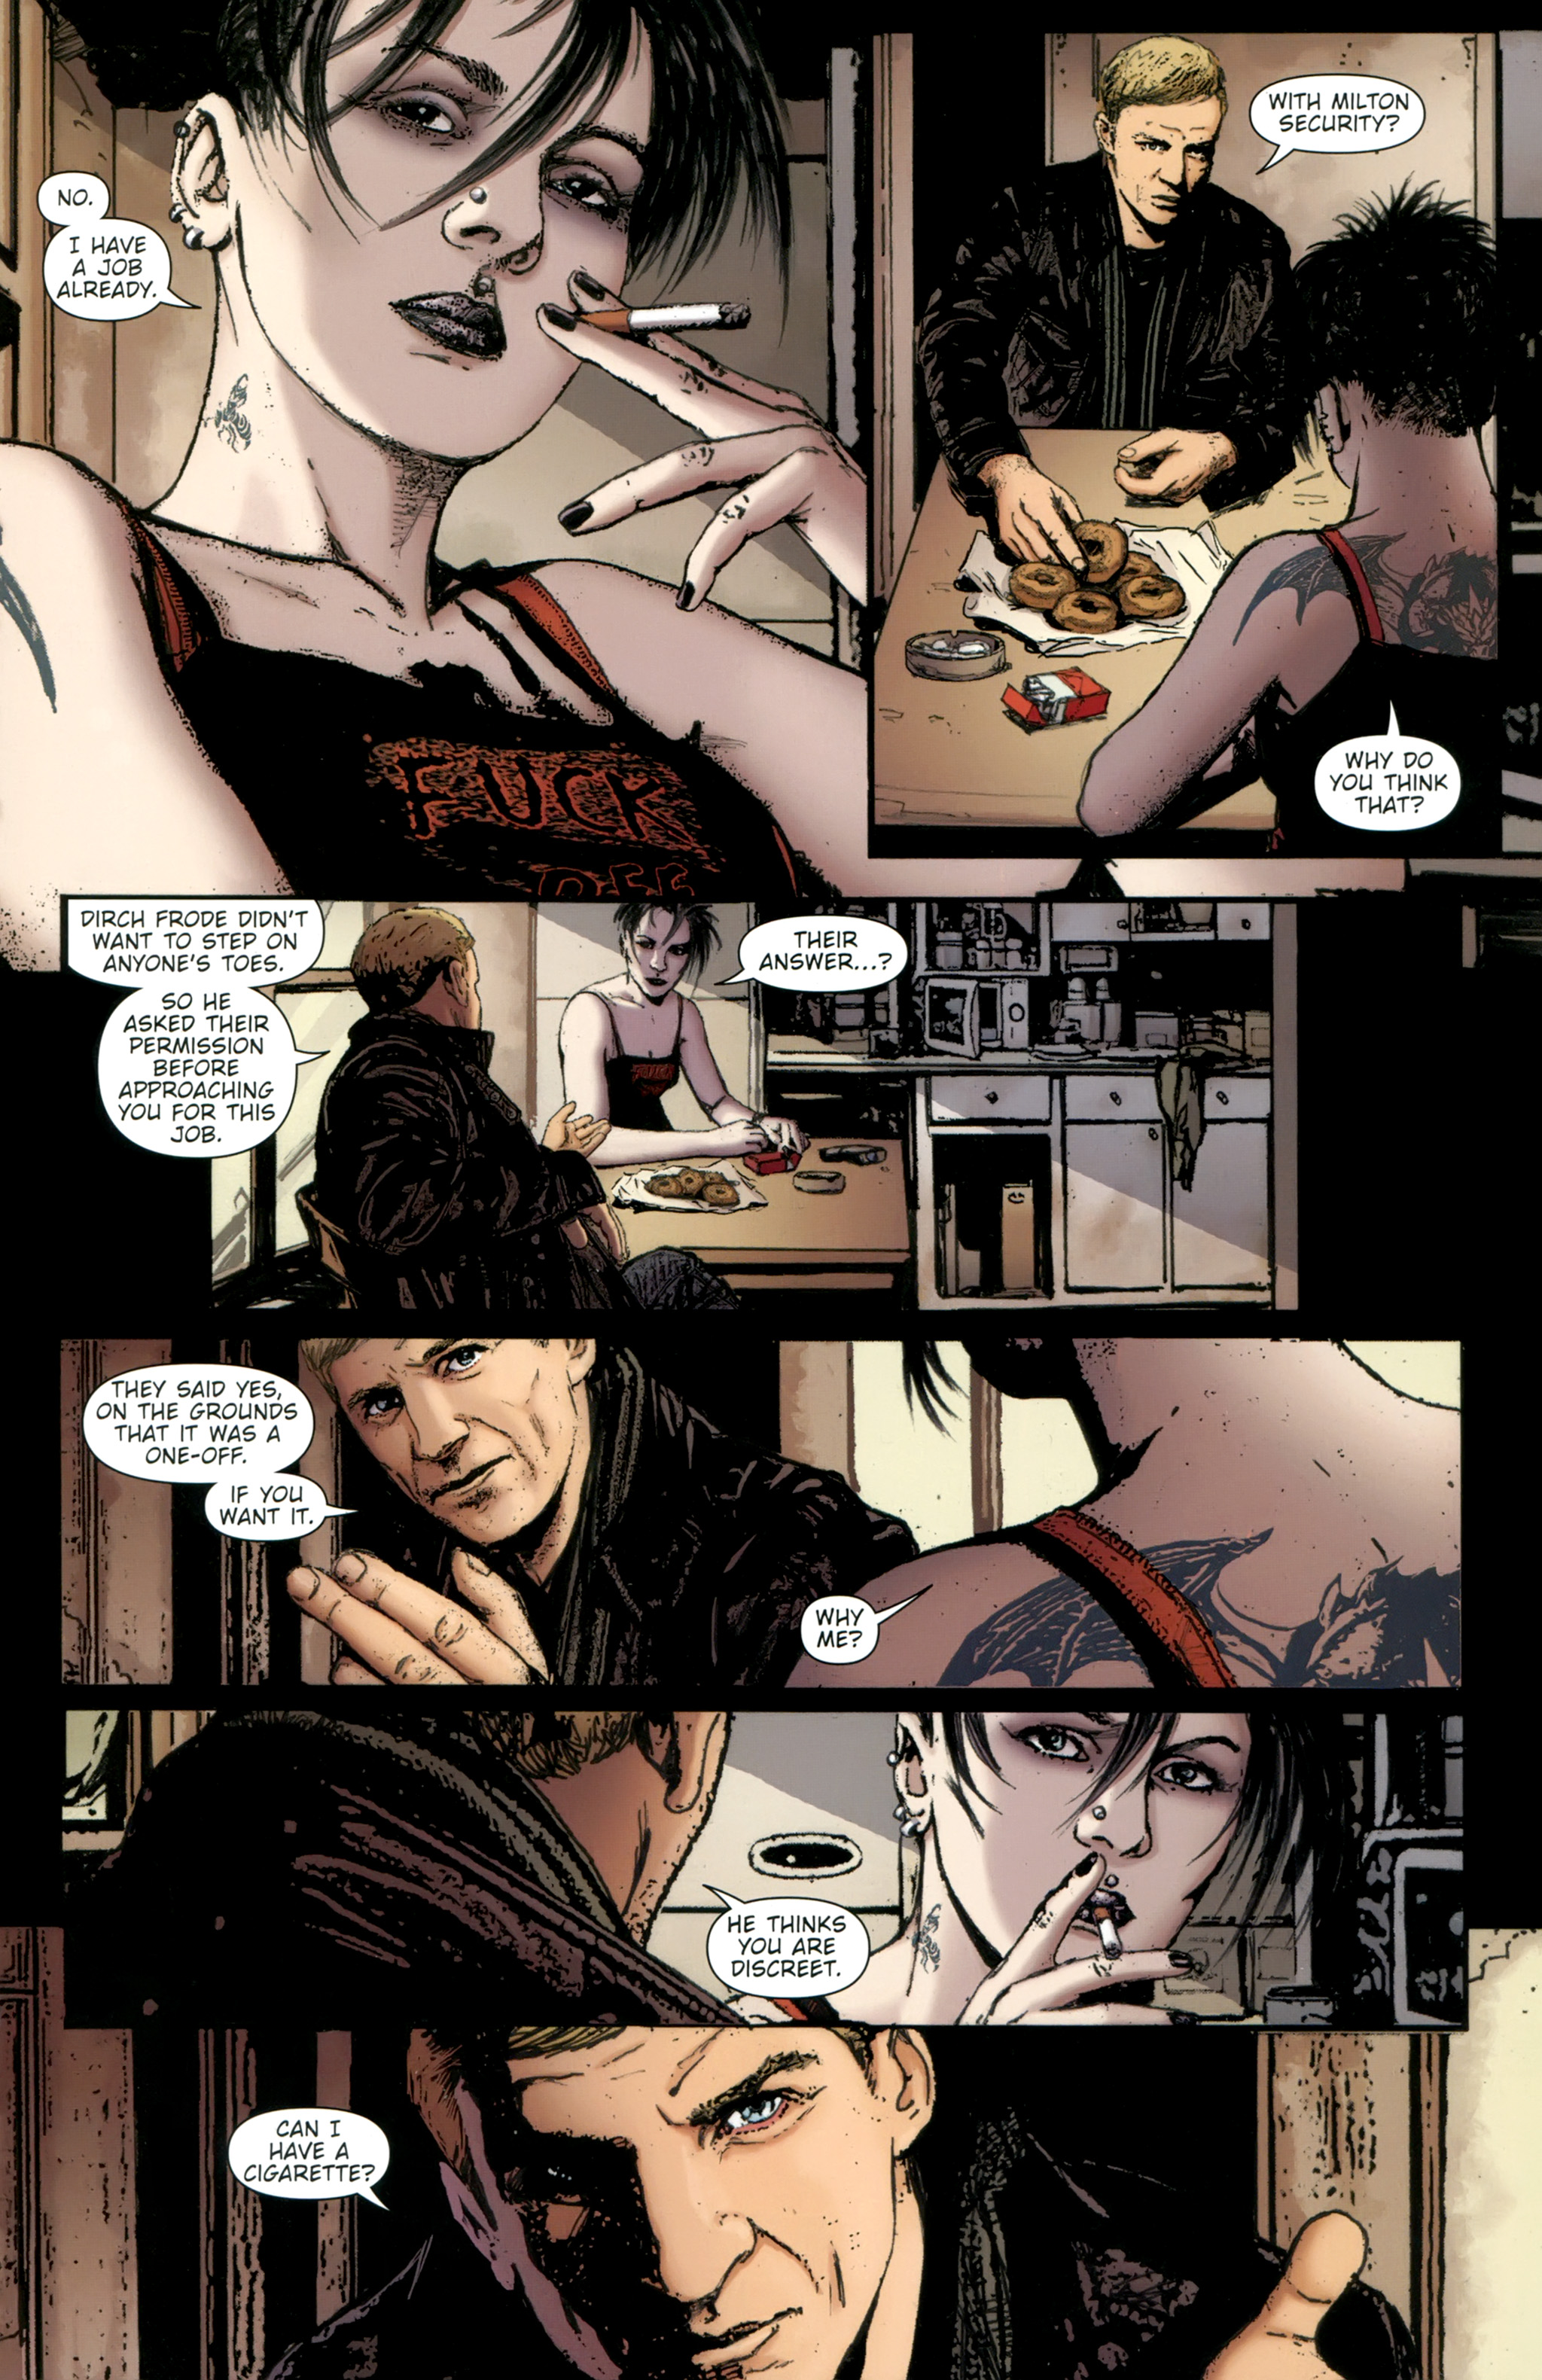 Read online The Girl With the Dragon Tattoo comic -  Issue # TPB 2 - 47